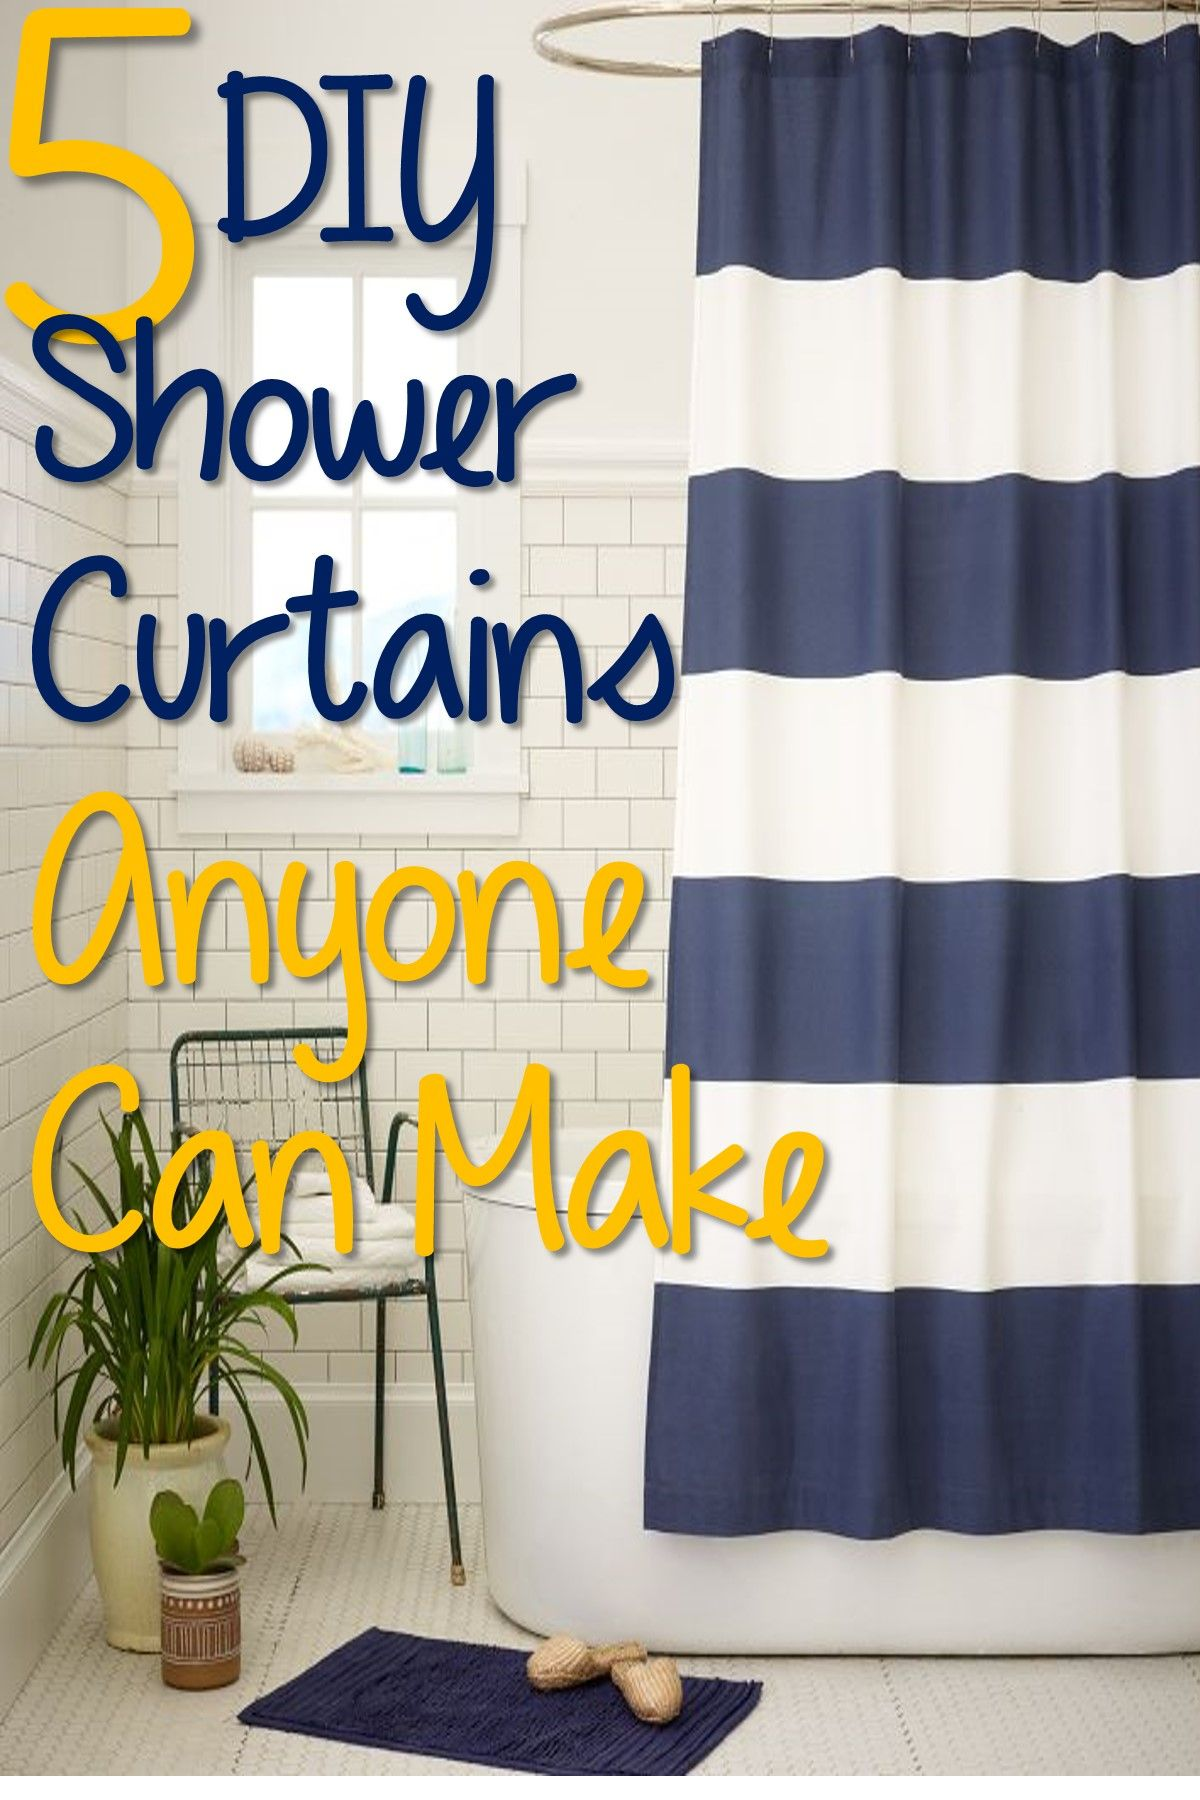 5 DIY Shower Curtains Anyone Could Make   Sometimes I See Fabric And Think  It Would